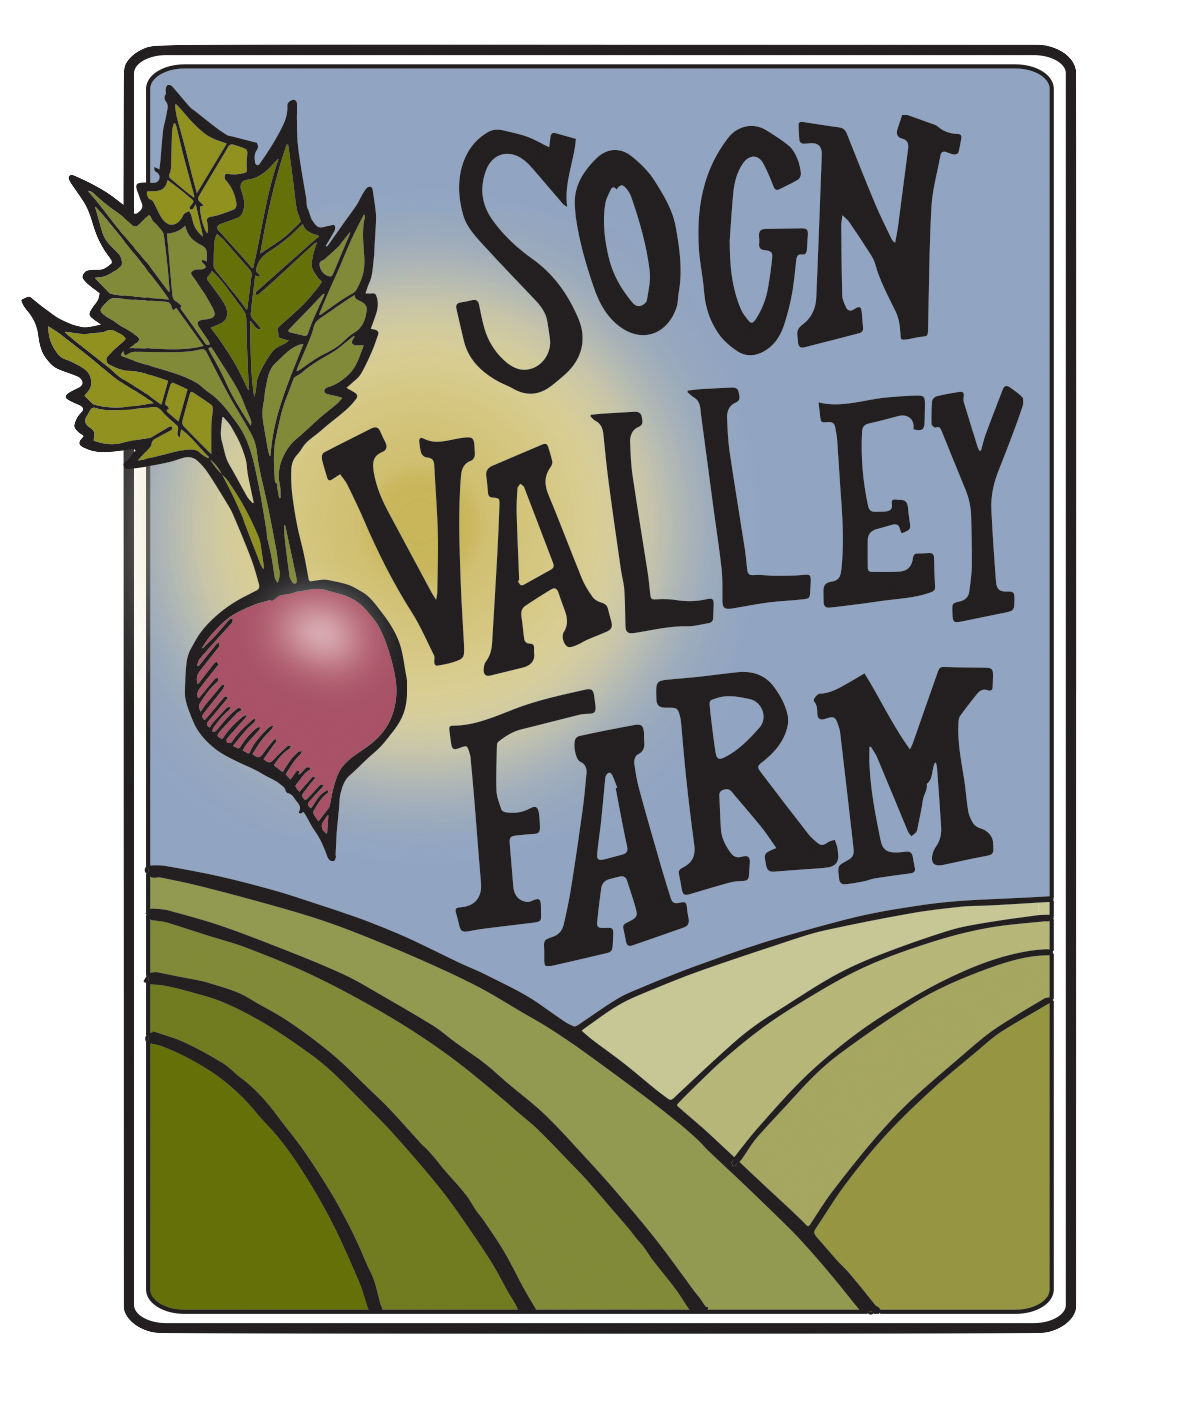 Sogn Valley Farm - Organic CSA Farm, Native Plants, and Wholesale Organic Produce | Minnesota Local